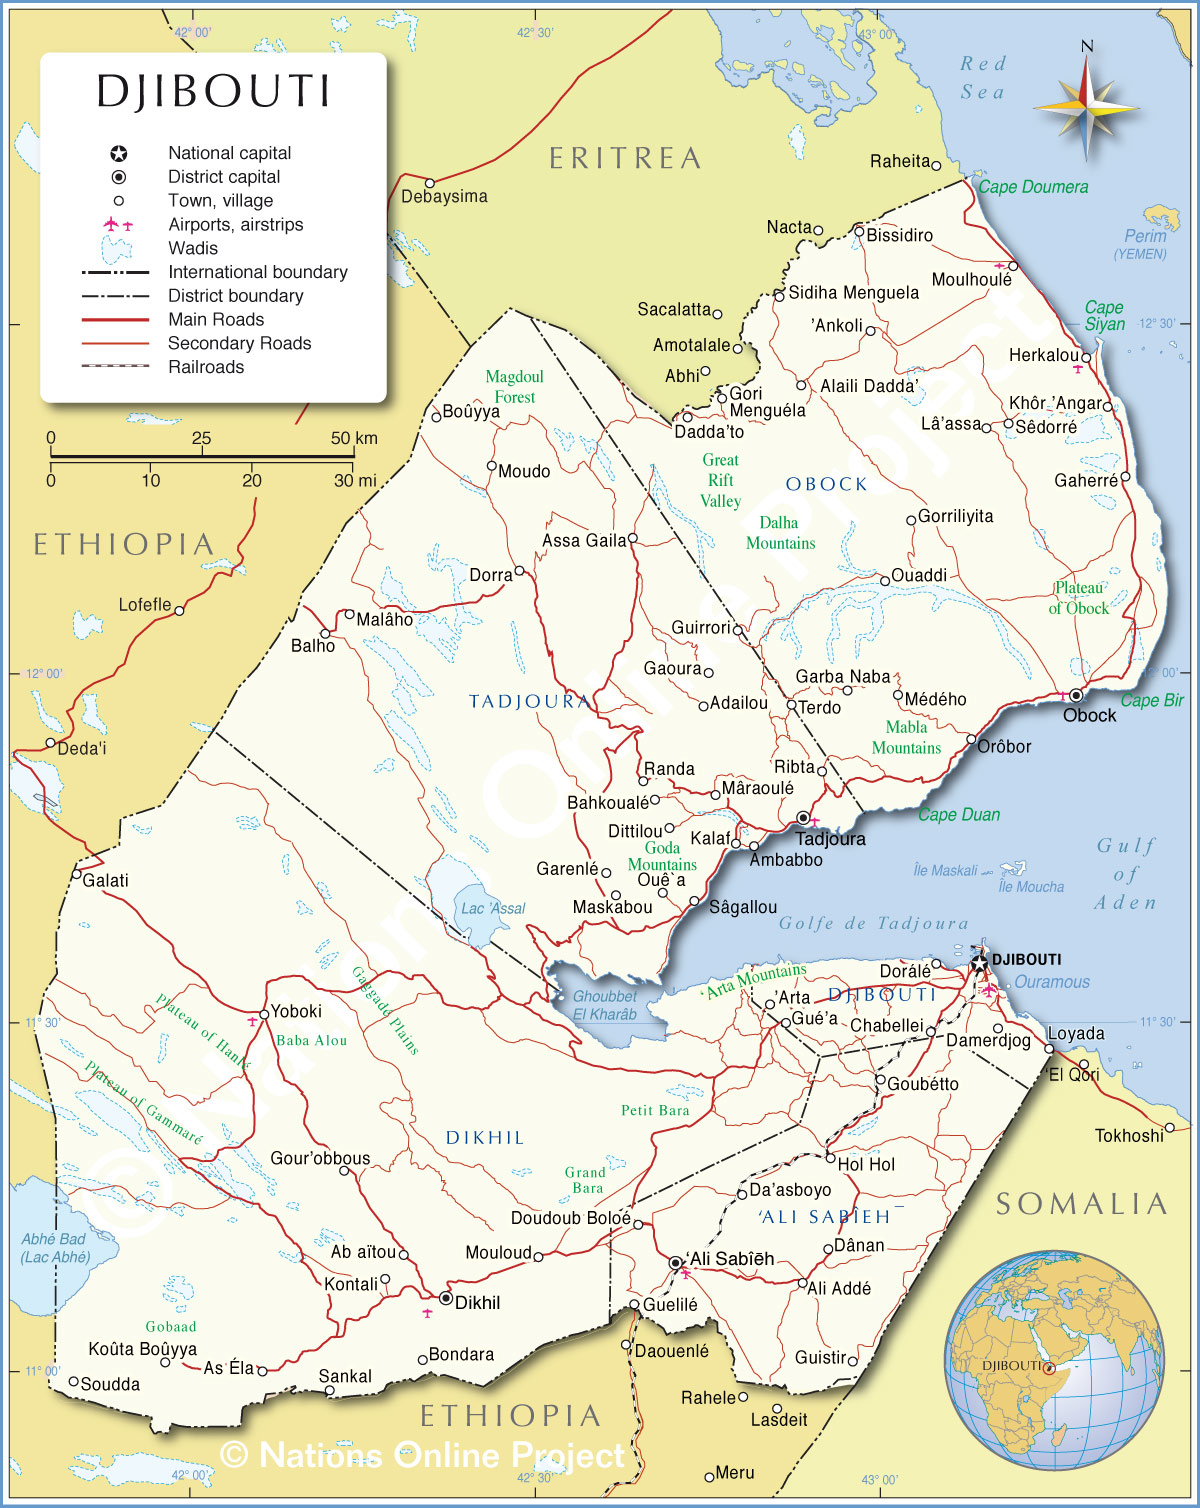 Djibouti On Africa Map.Political Map Of Djibouti 1200 Pixel Nations Online Project